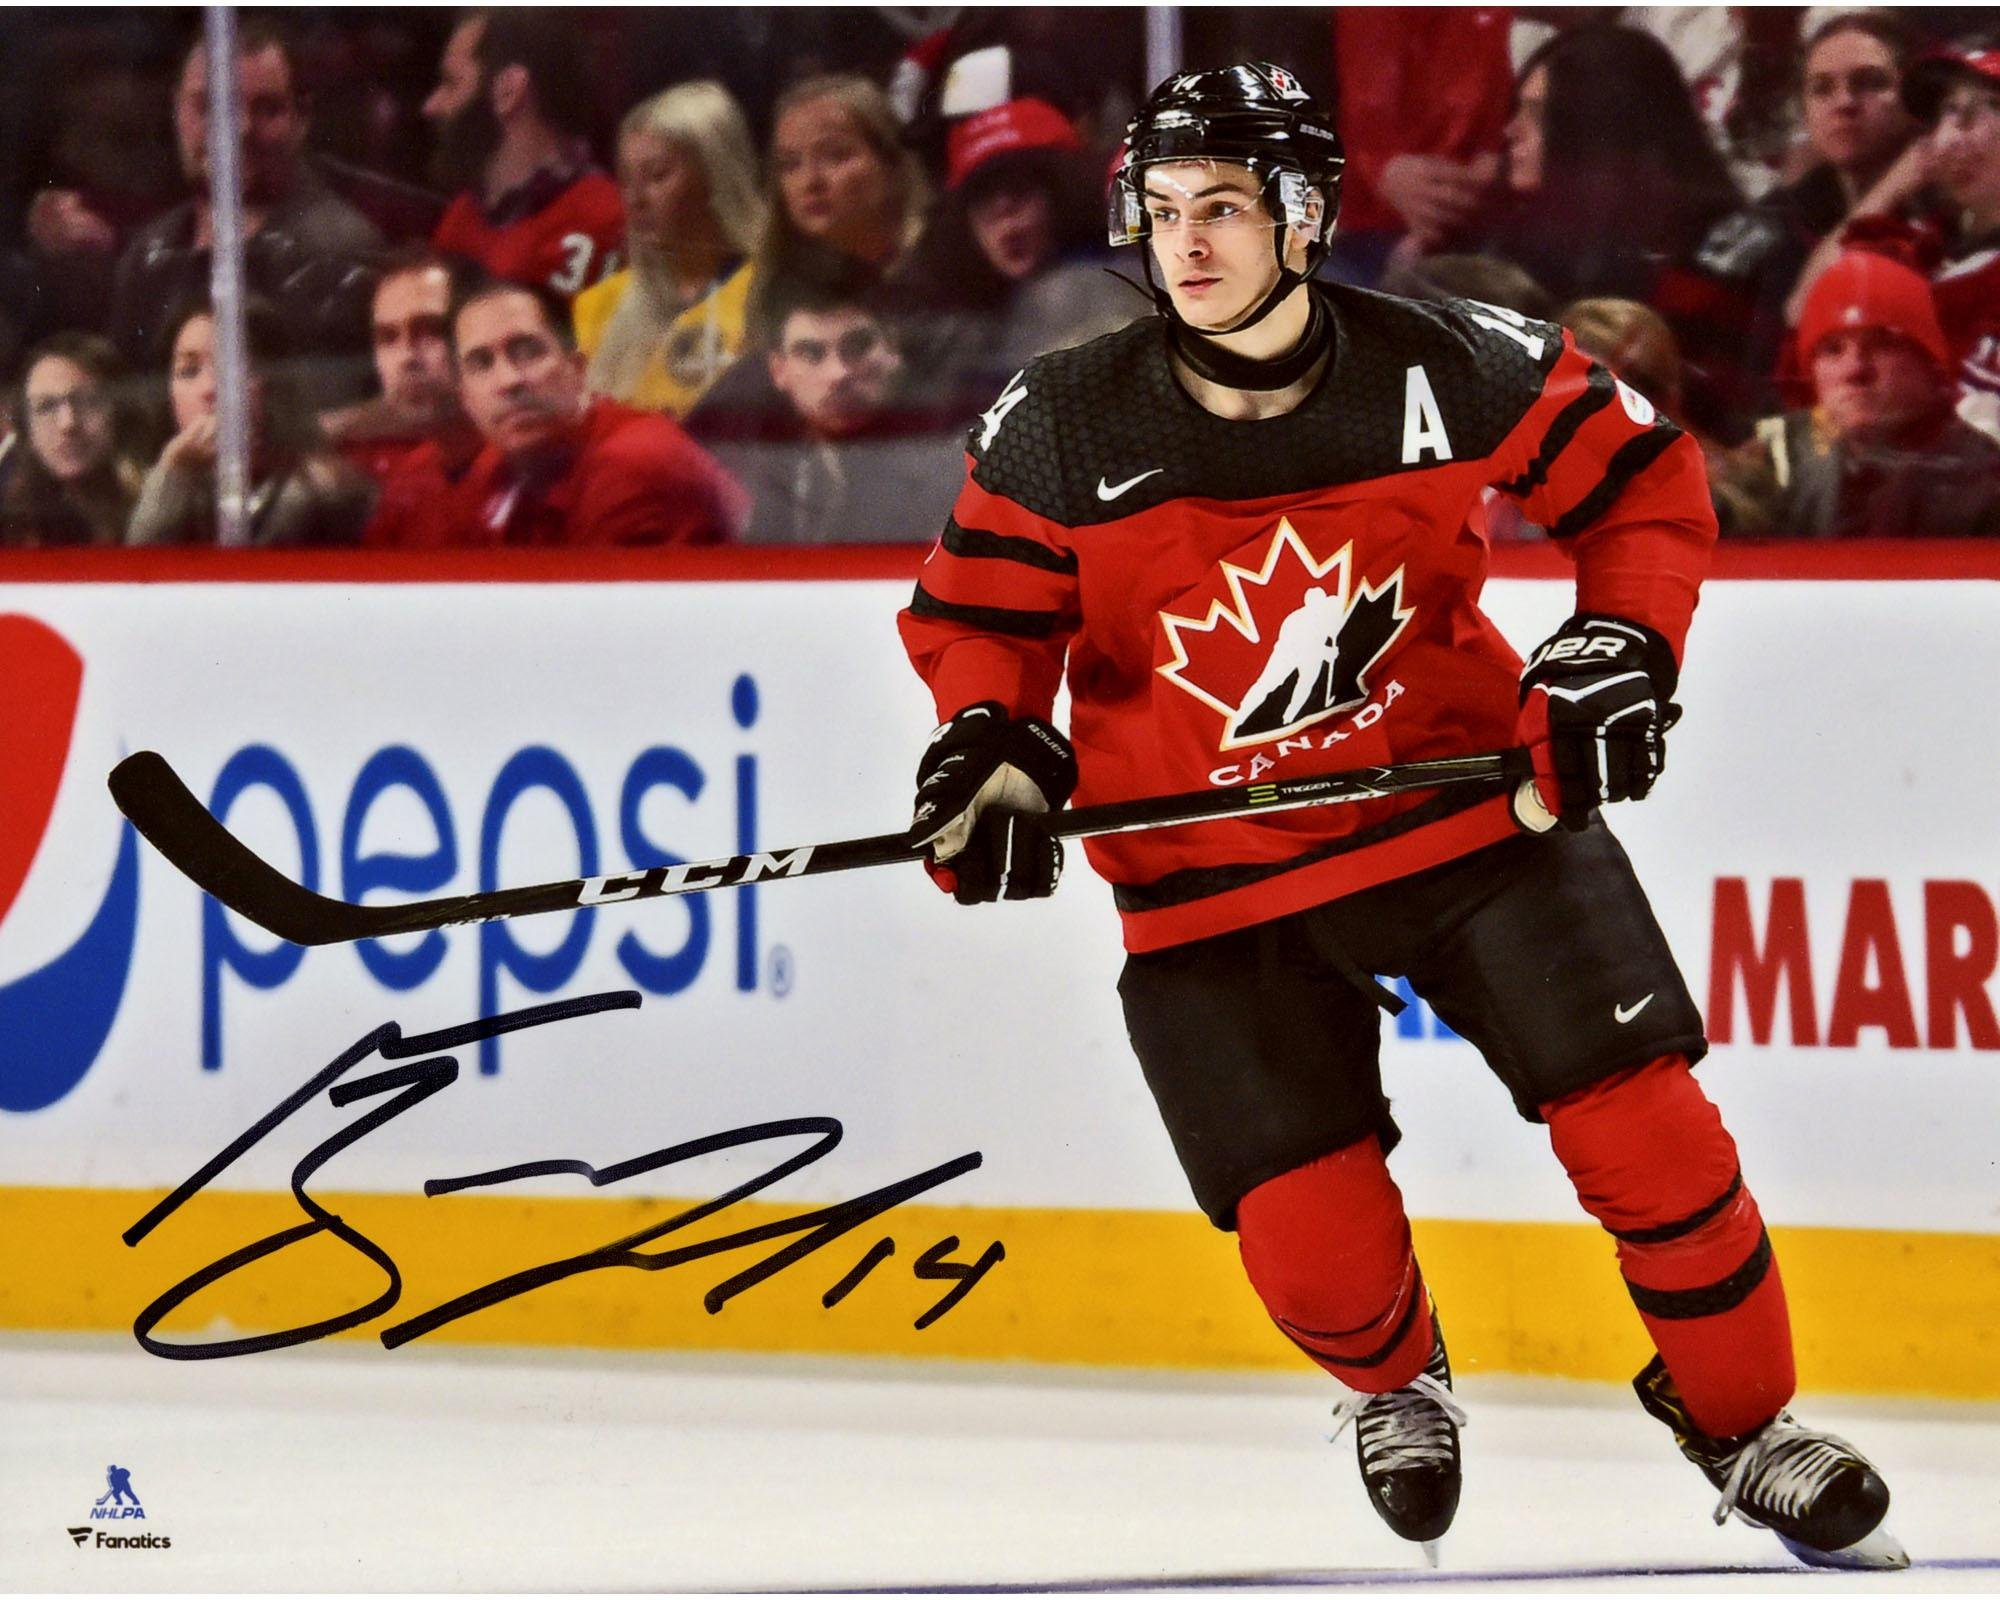 "Mathew Barzal Team Canada Autographed 8"" x 10"" Photograph Fanatics Authentic Certified Autographed NHL Photos"